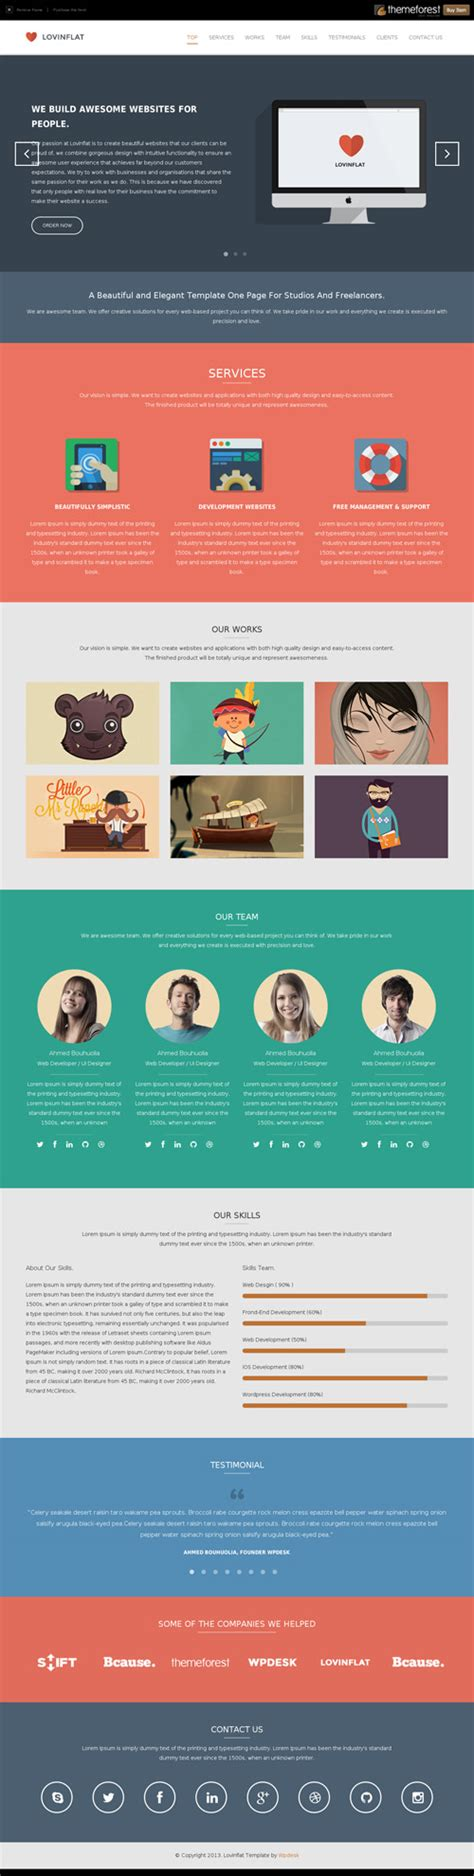 responsive one page templates permium collection